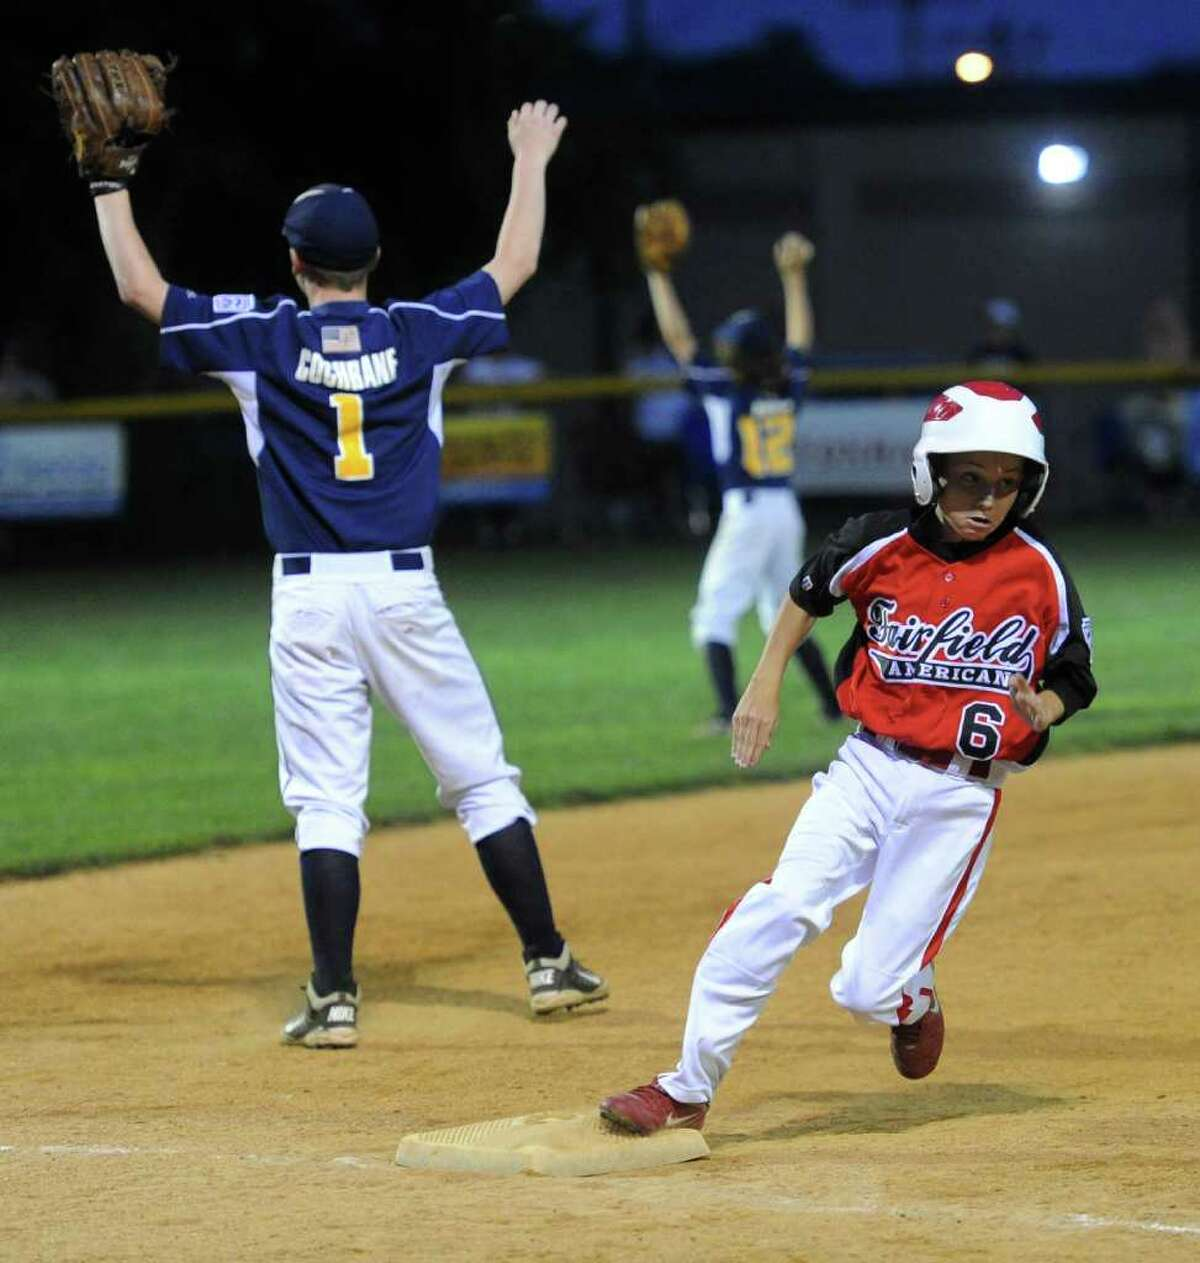 Fairfield American plays against East Haven during Wednesday's Little League sectional game in Orange on July 20, 2011.